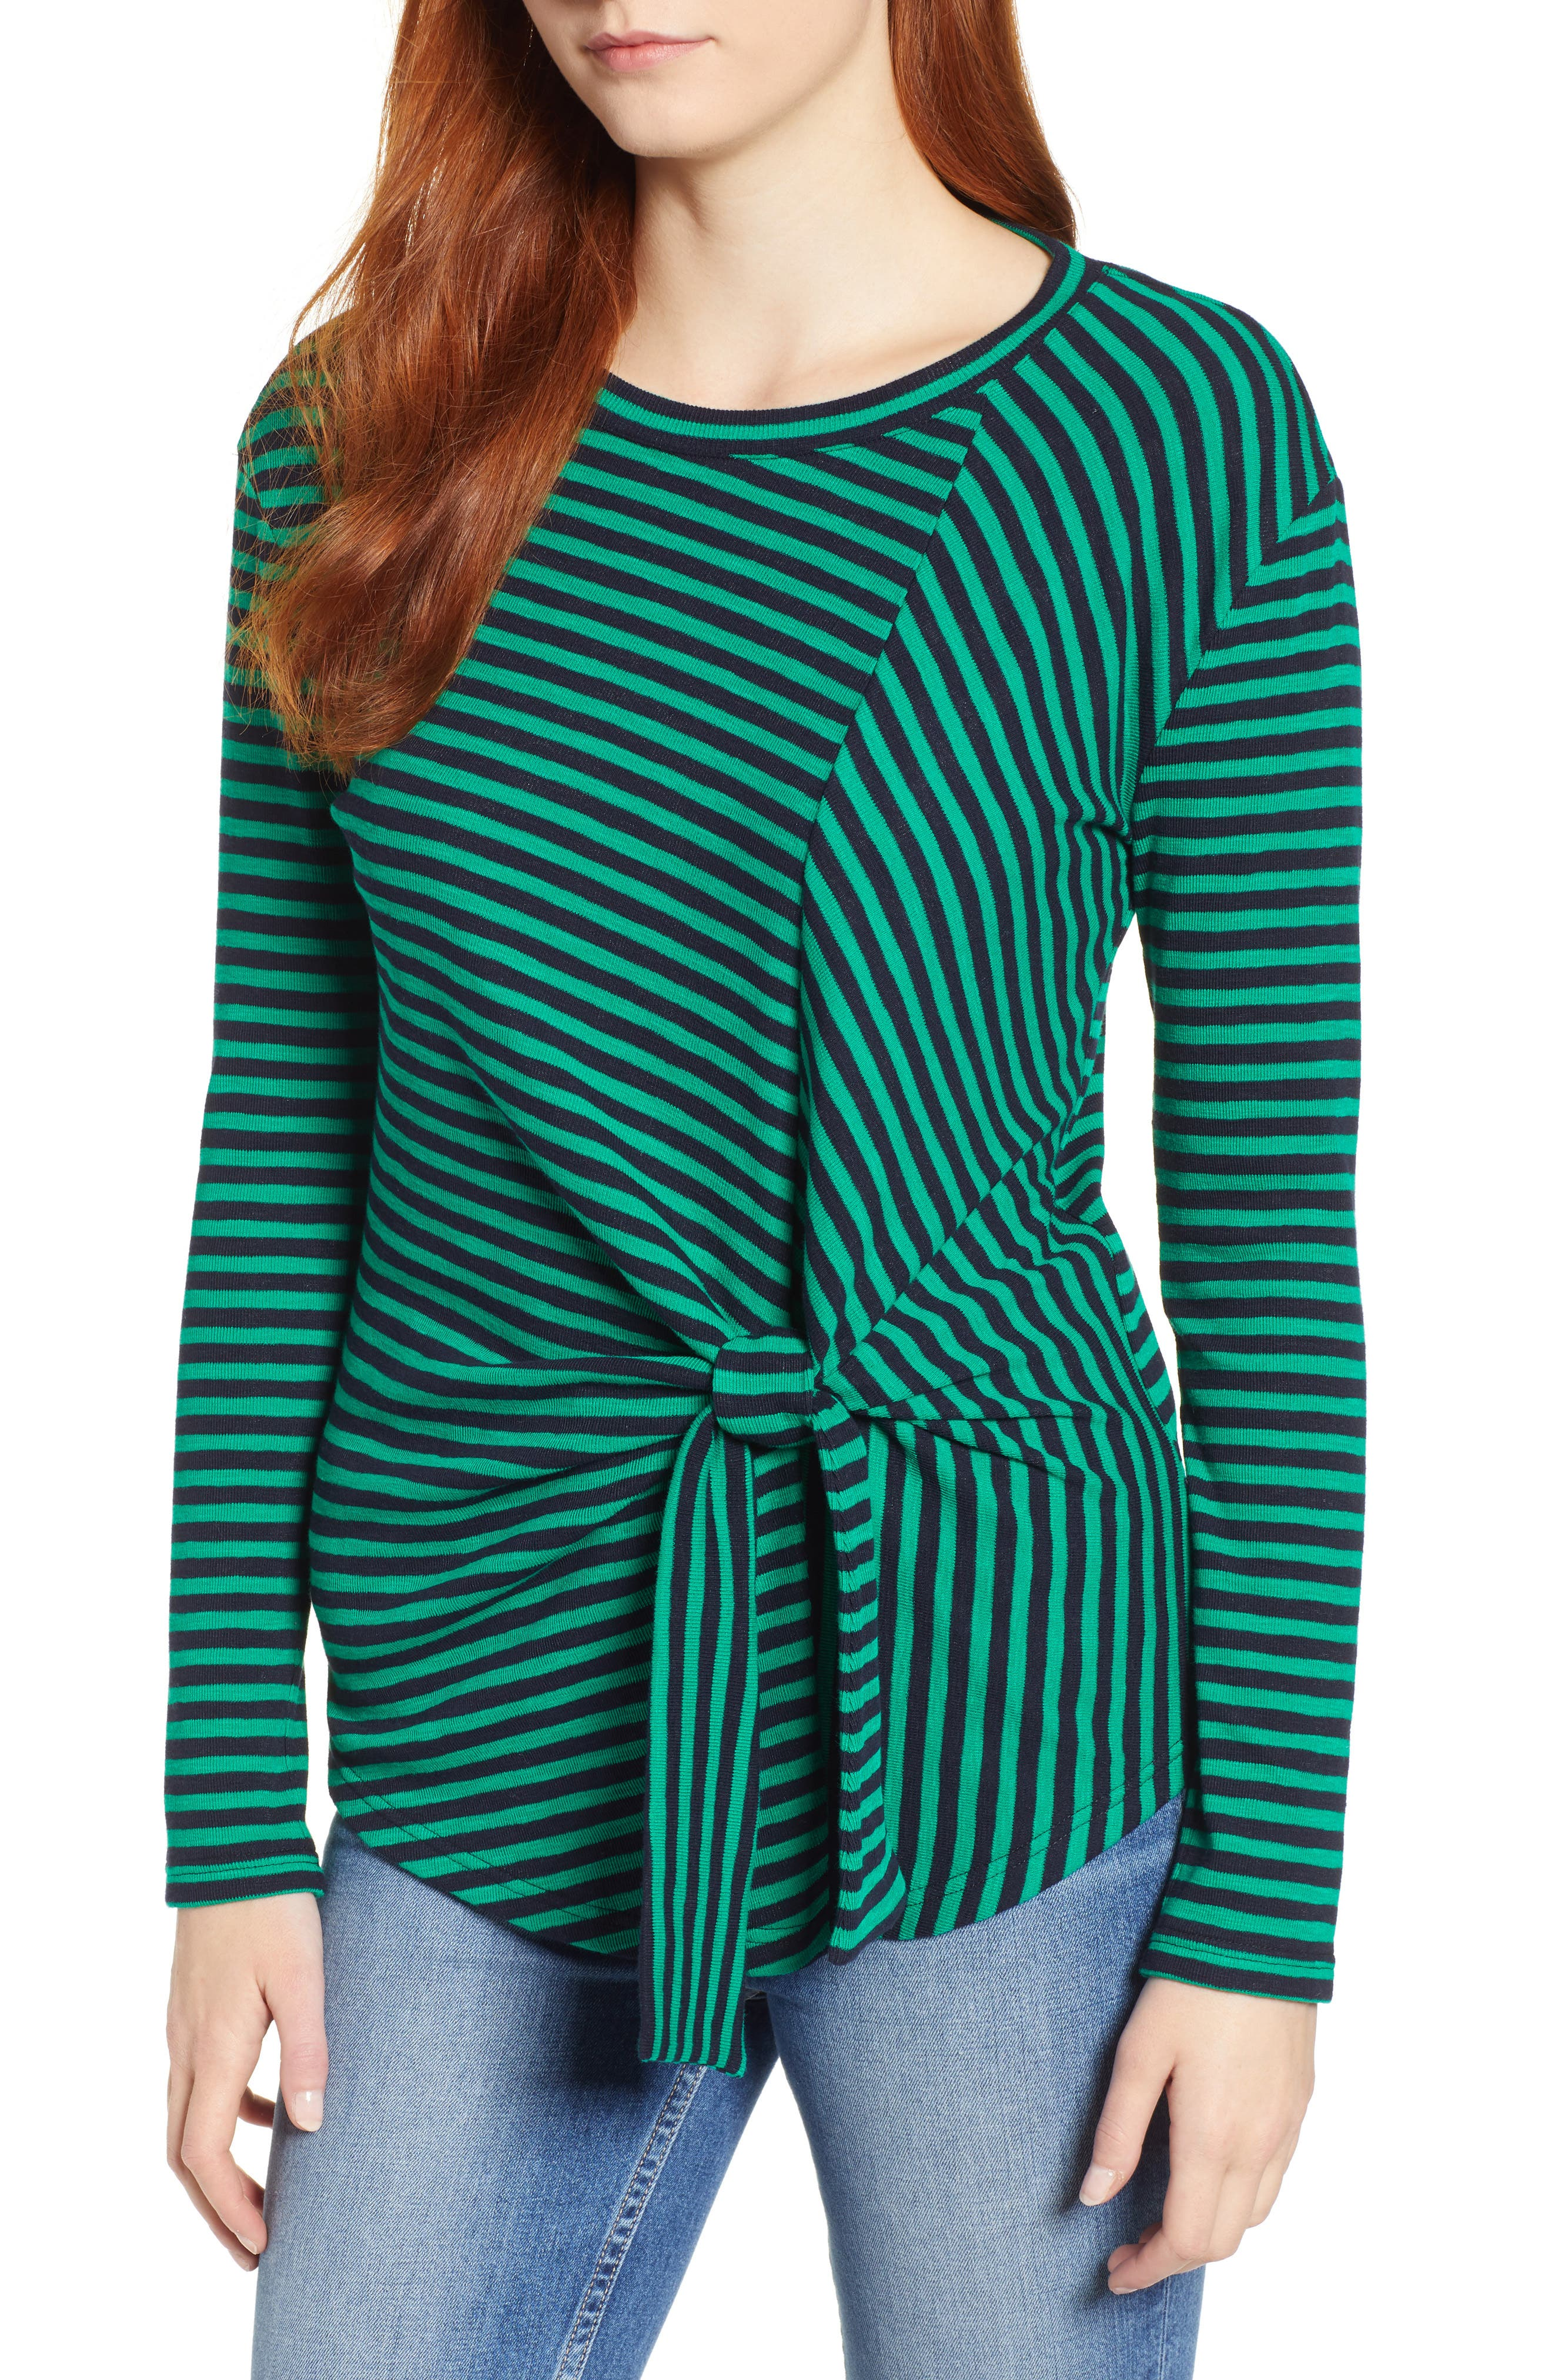 &.LAYERED, Twist Front Stripe Stretch Cotton Tee, Main thumbnail 1, color, NAVY/ GREEN